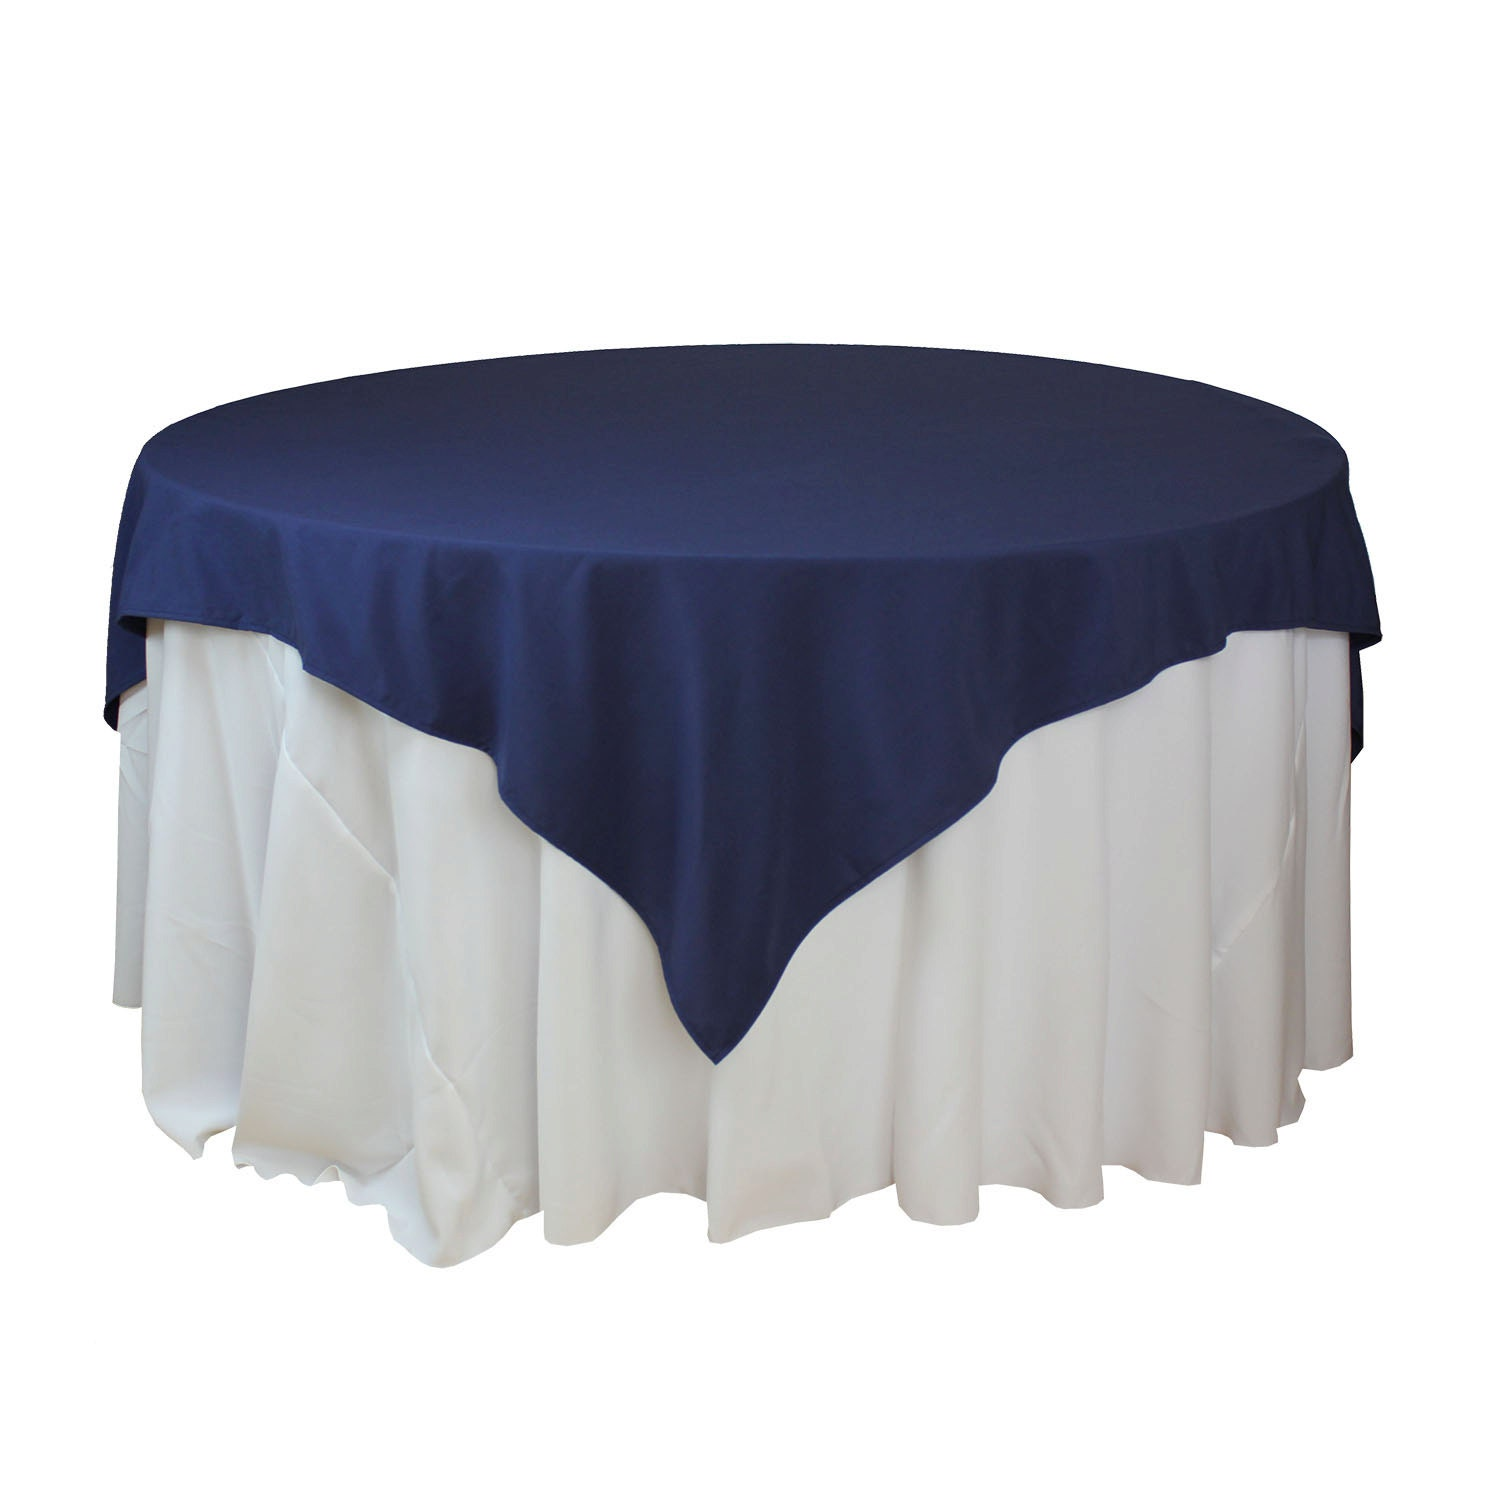 Table Cloth For Round Table Navy Blue Tablecloth Etsy